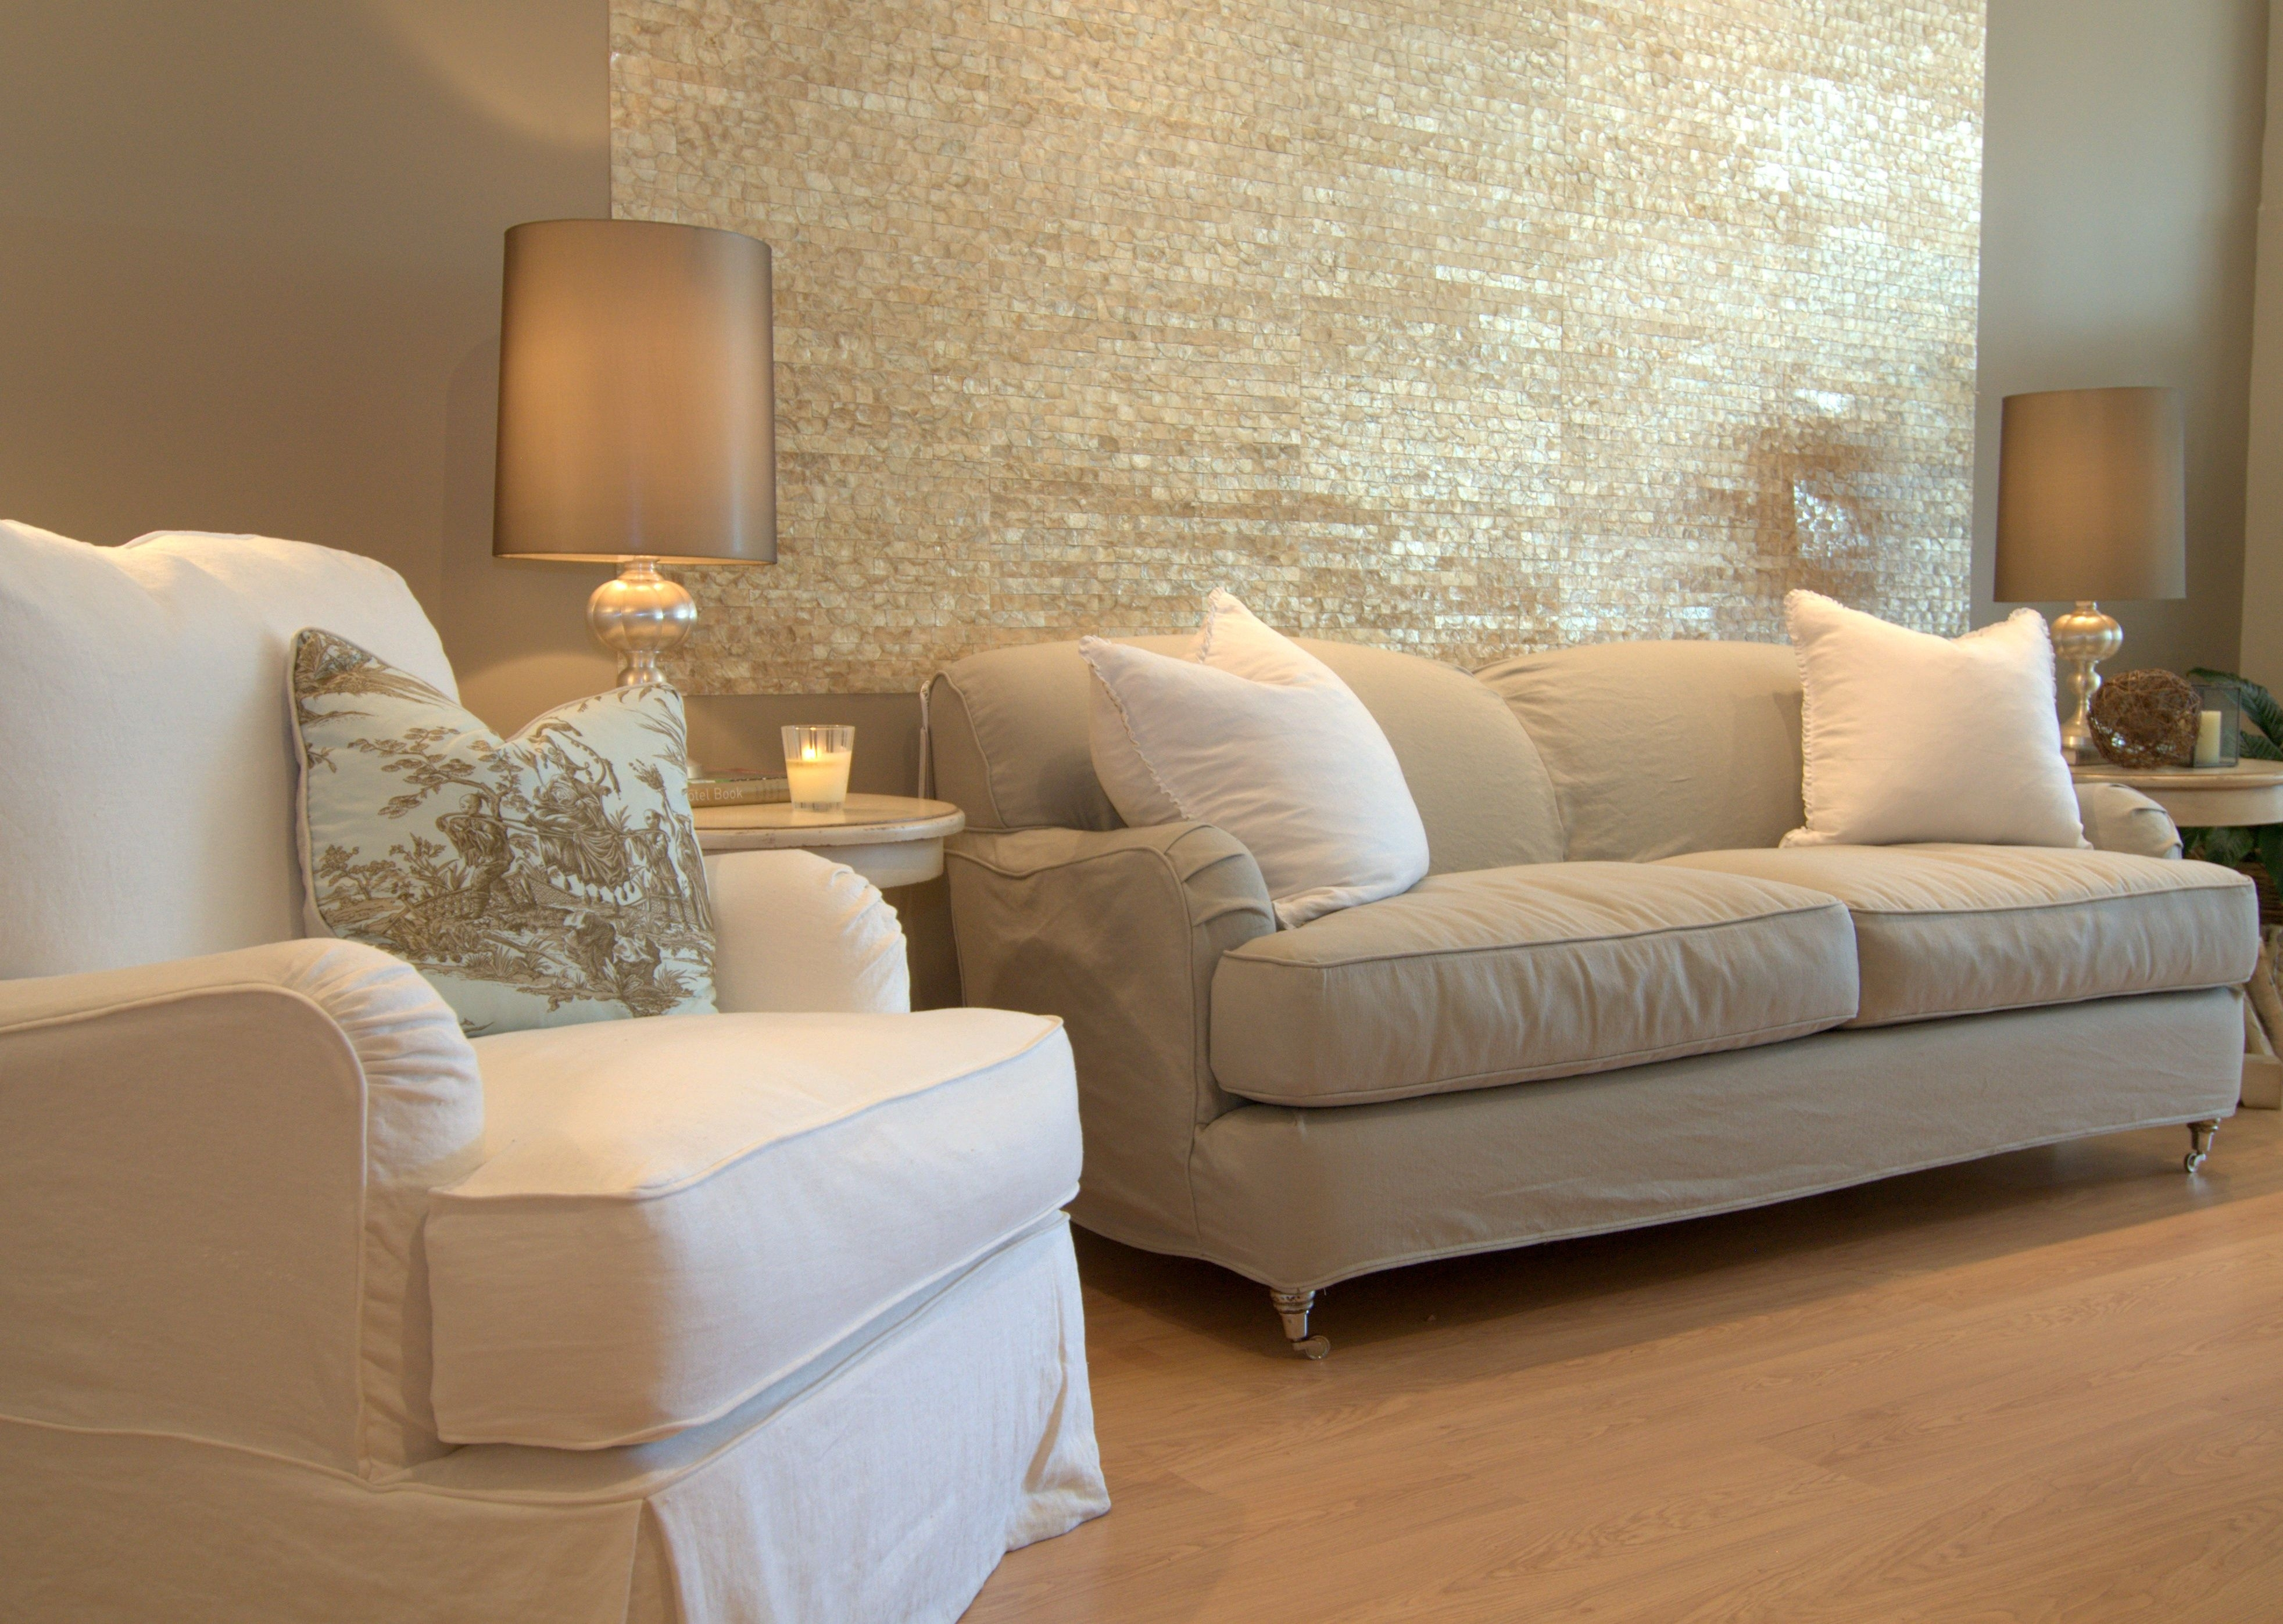 Quatrine - Birmingham. London Sofa And Milan Chair | Inside Our inside Quatrine Sectional Sofas (Image 2 of 10)